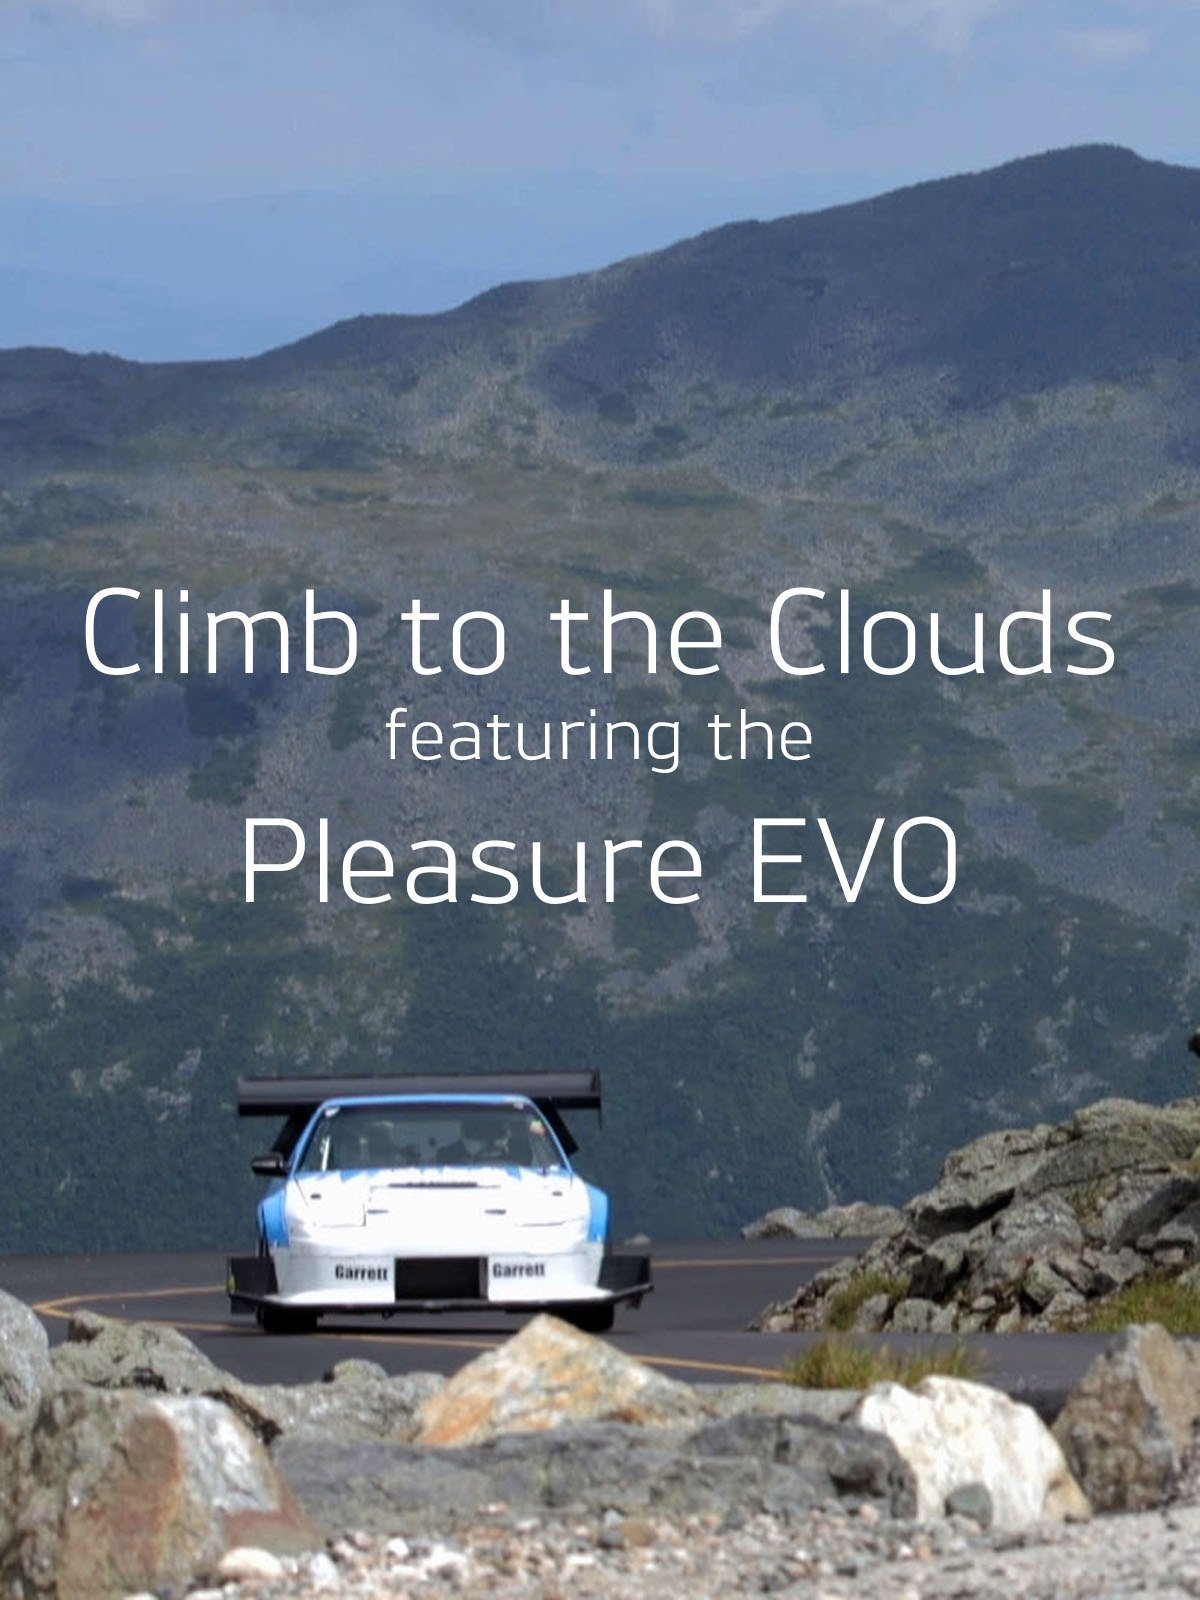 Climb to the Clouds featuring the Pleasure EVO